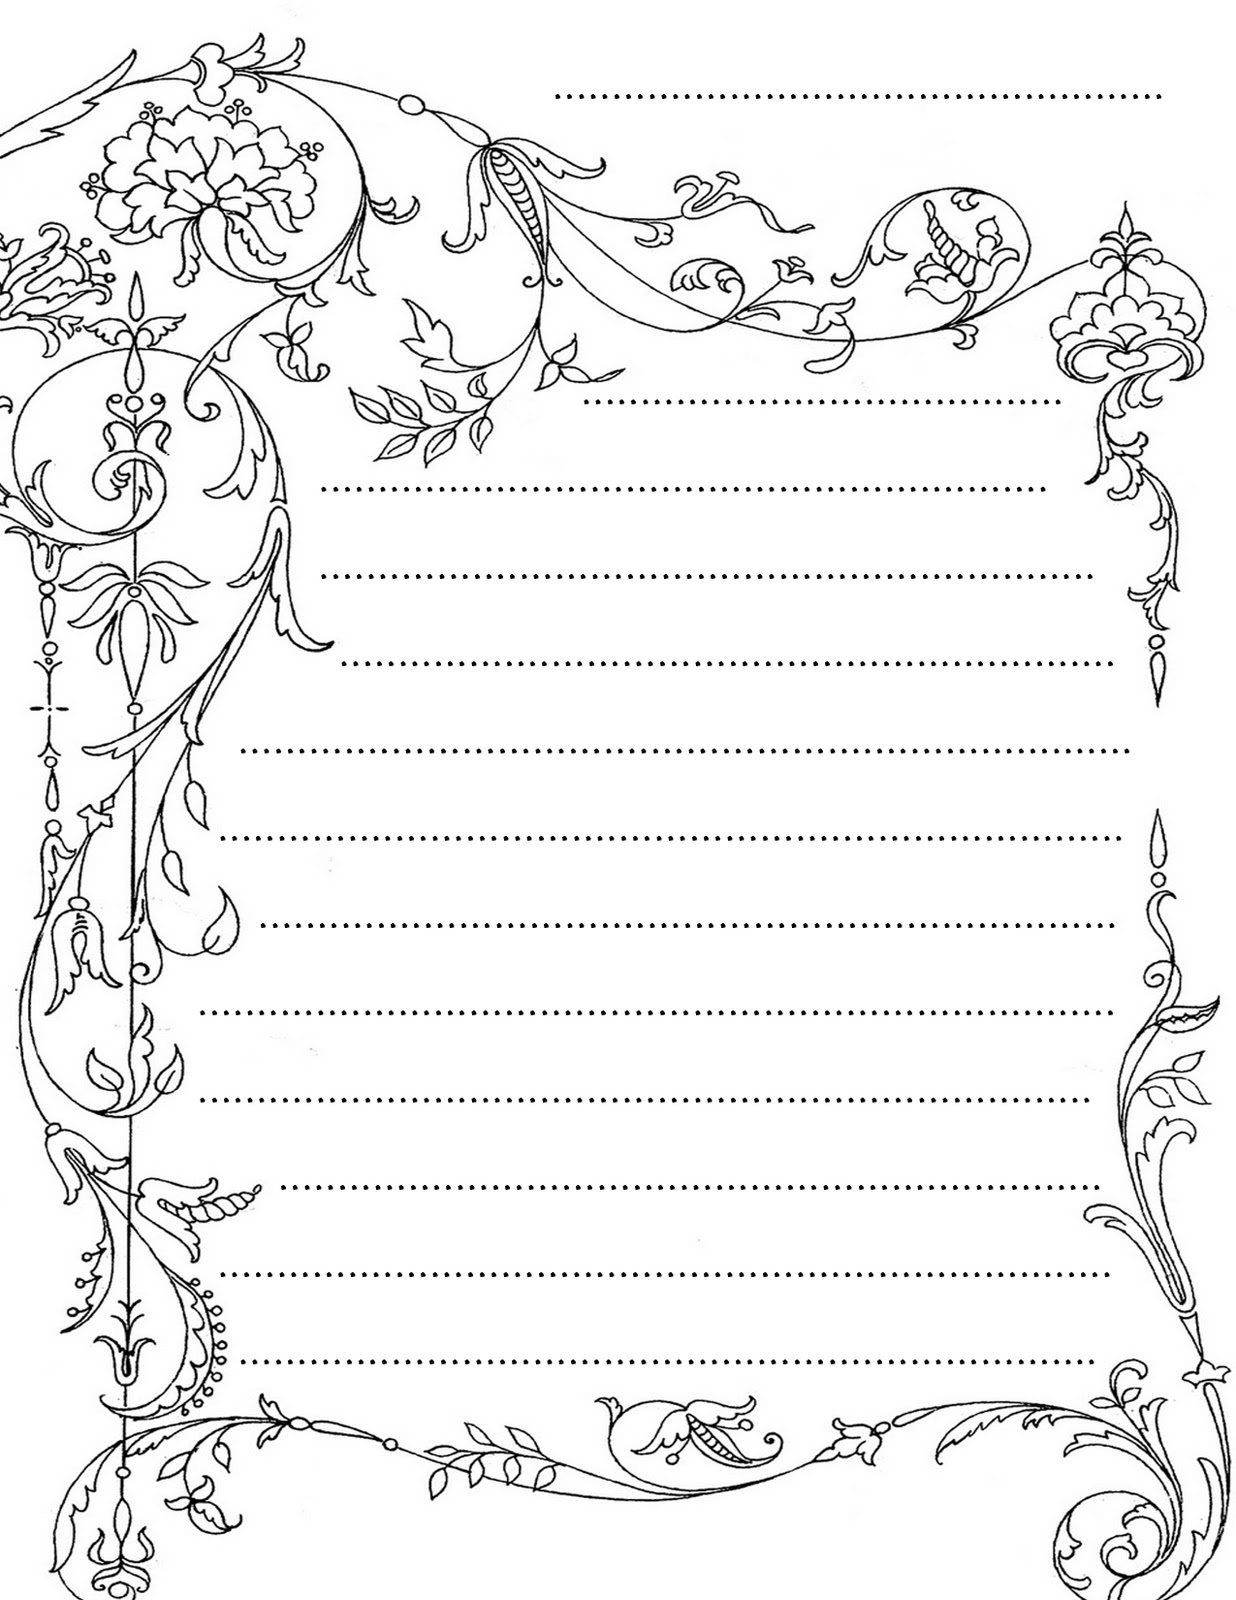 Printable lined stationery black and white